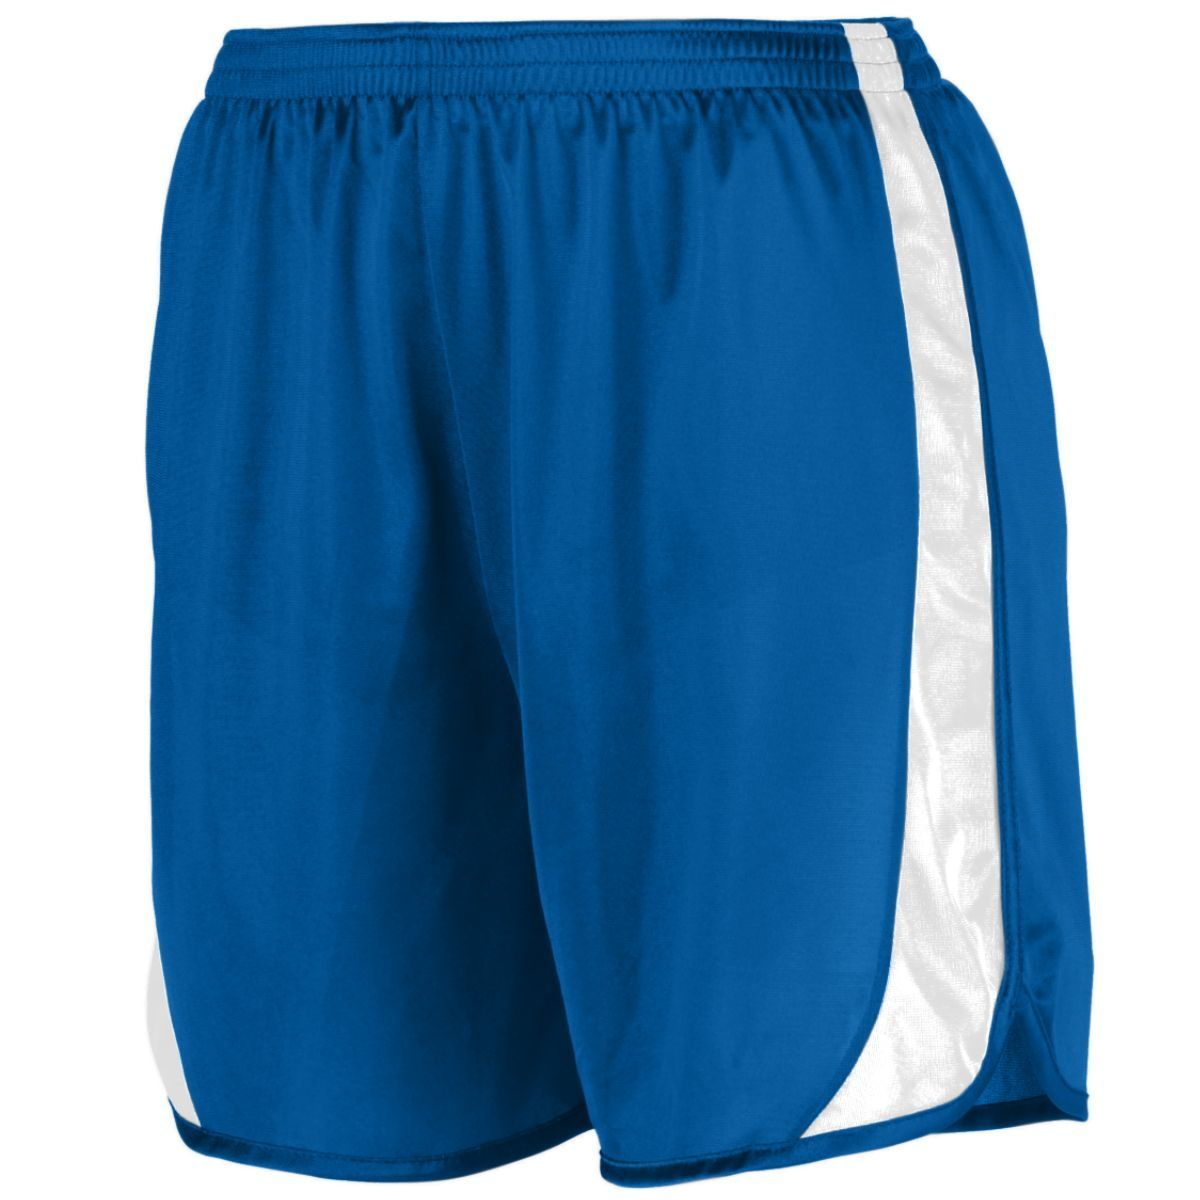 Youth Wicking Track Shorts With Side Insert - ROYAL/WHITE